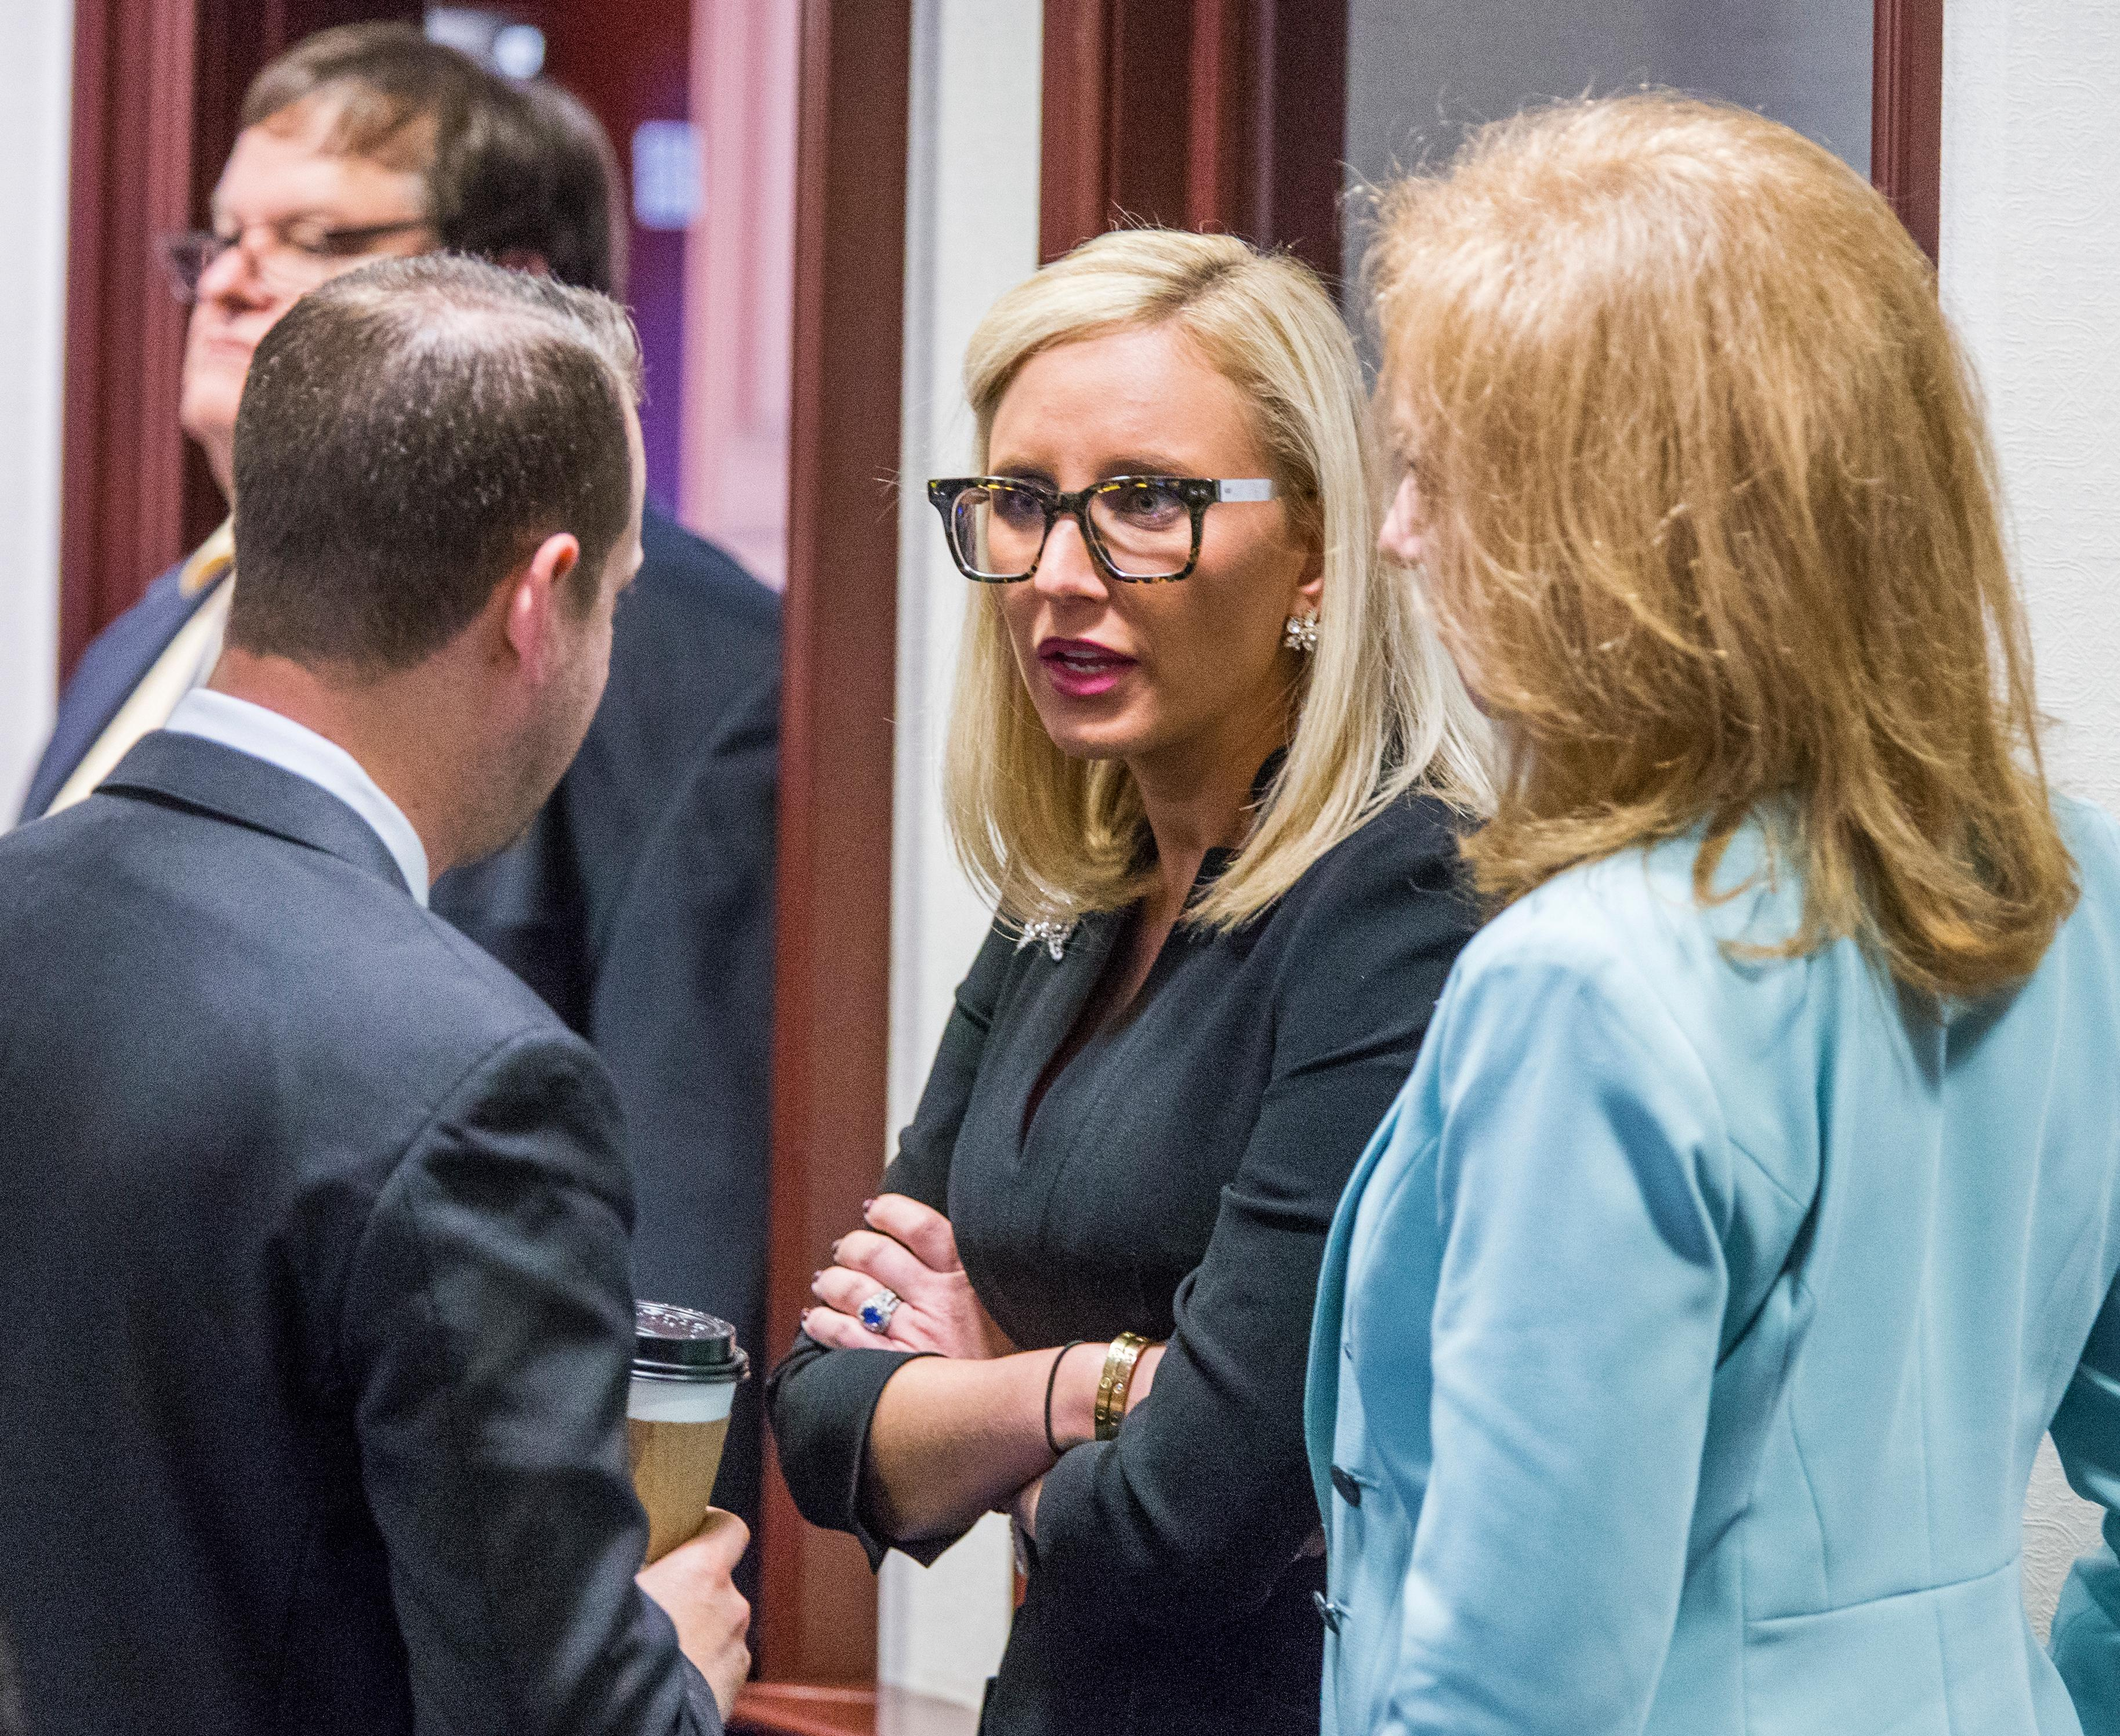 Florida Sen. Lauren Book (D-Plantation), center, speaks with Rep. Jared Even Moskowitz (D-Coral Springs), left, and Rep. Kristin Diane Jacobs (D-Coconut Creek) on the House floor during questioning on the school safety bill at the Florida Capital in Tallahassee, Fla., Tuesday March 6, 2018. (AP Photo/Mark Wallheiser)